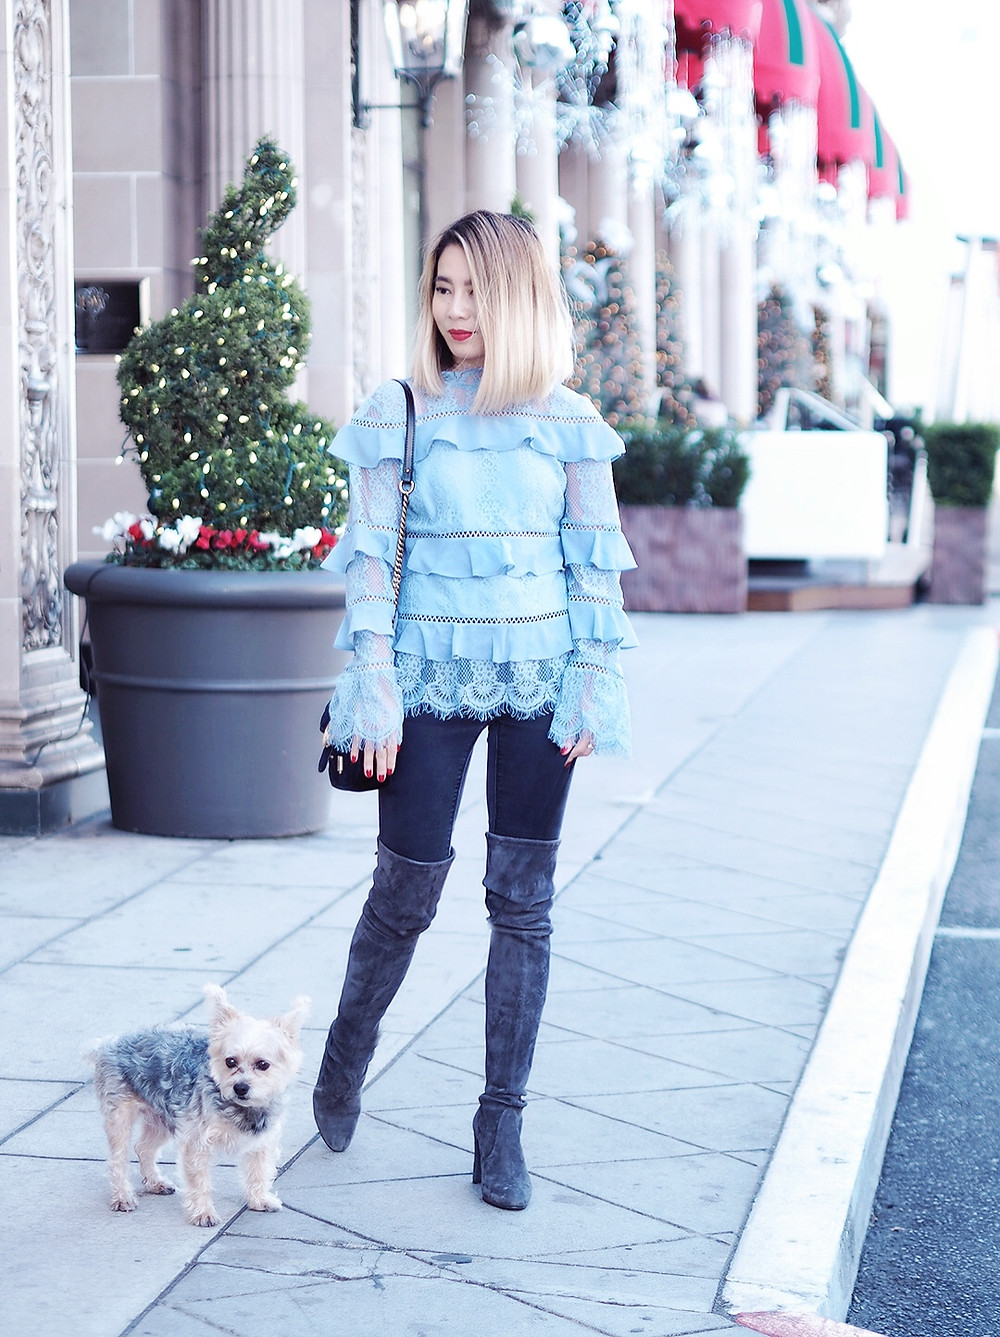 Holidays in Beverly Hills | Lam in Louboutins